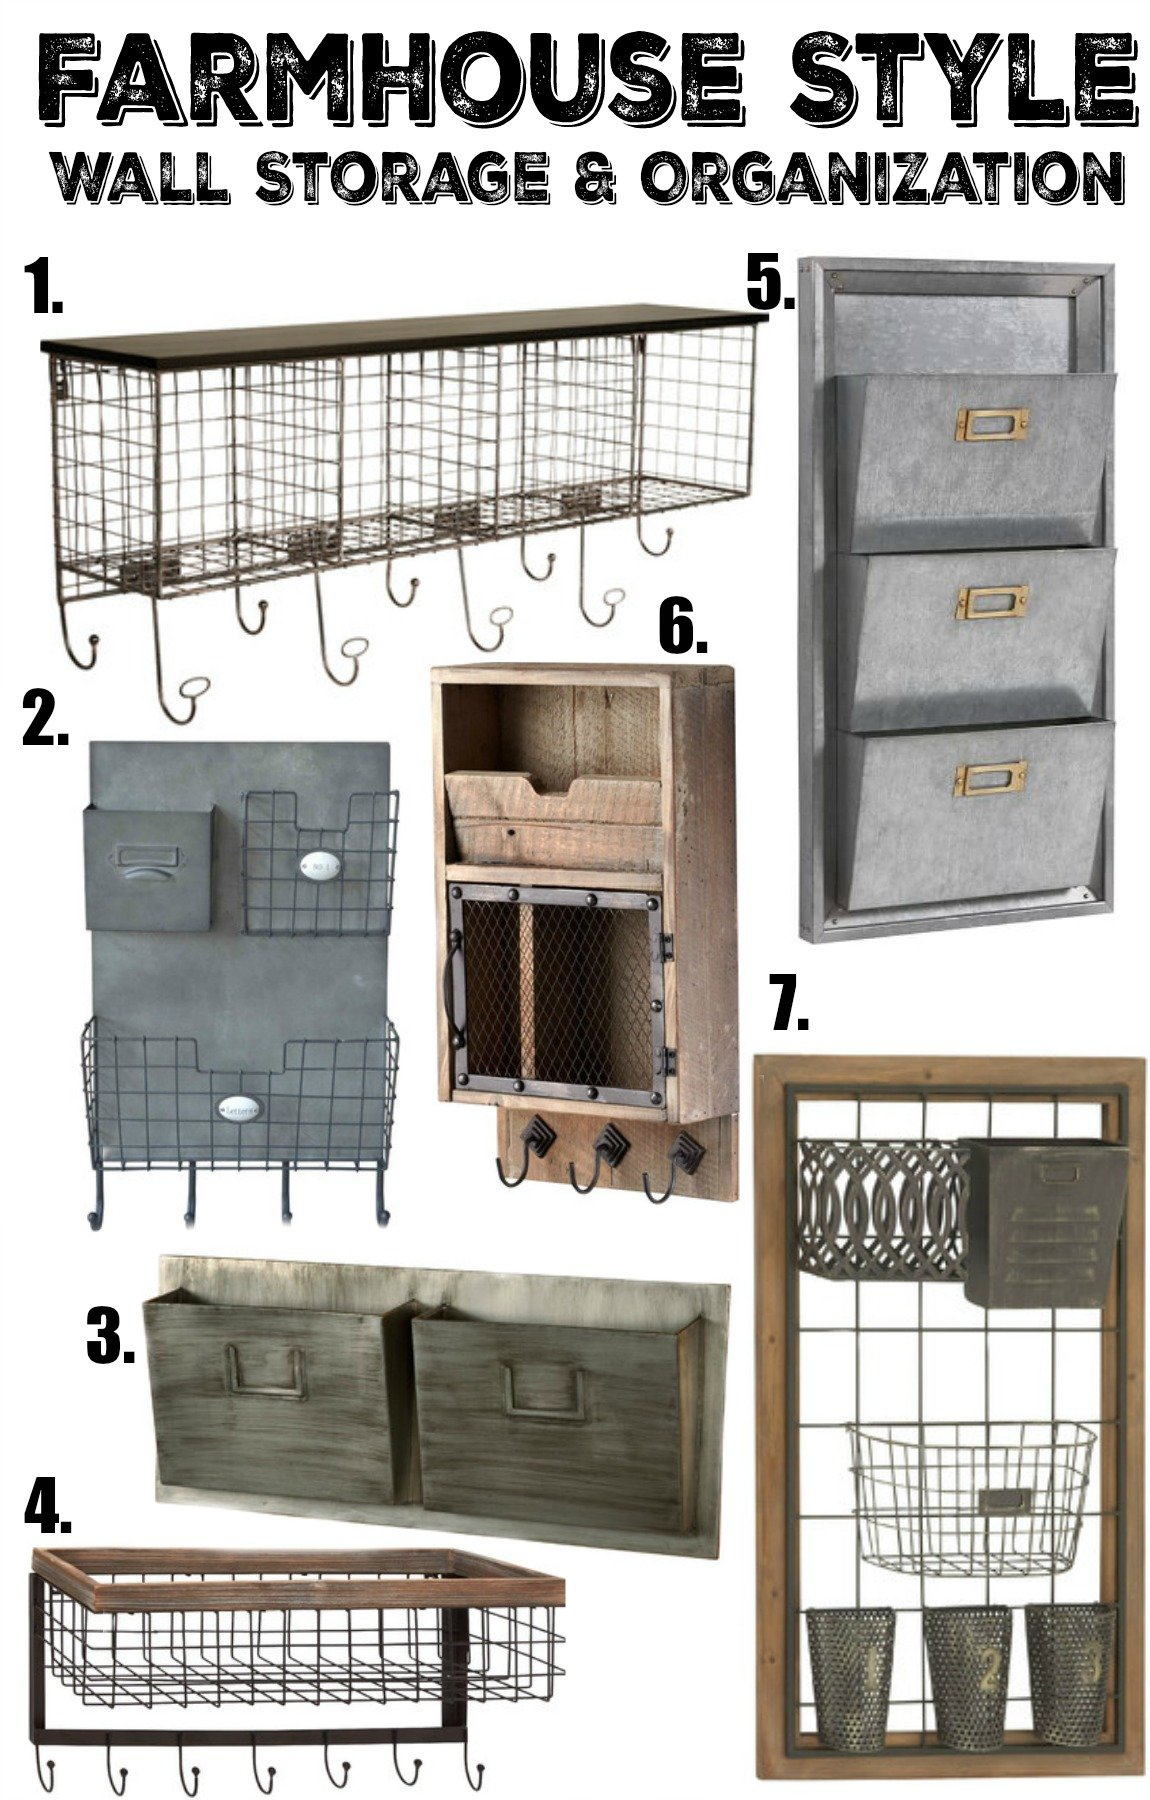 Farmhouse Style Wall Storage and Organization